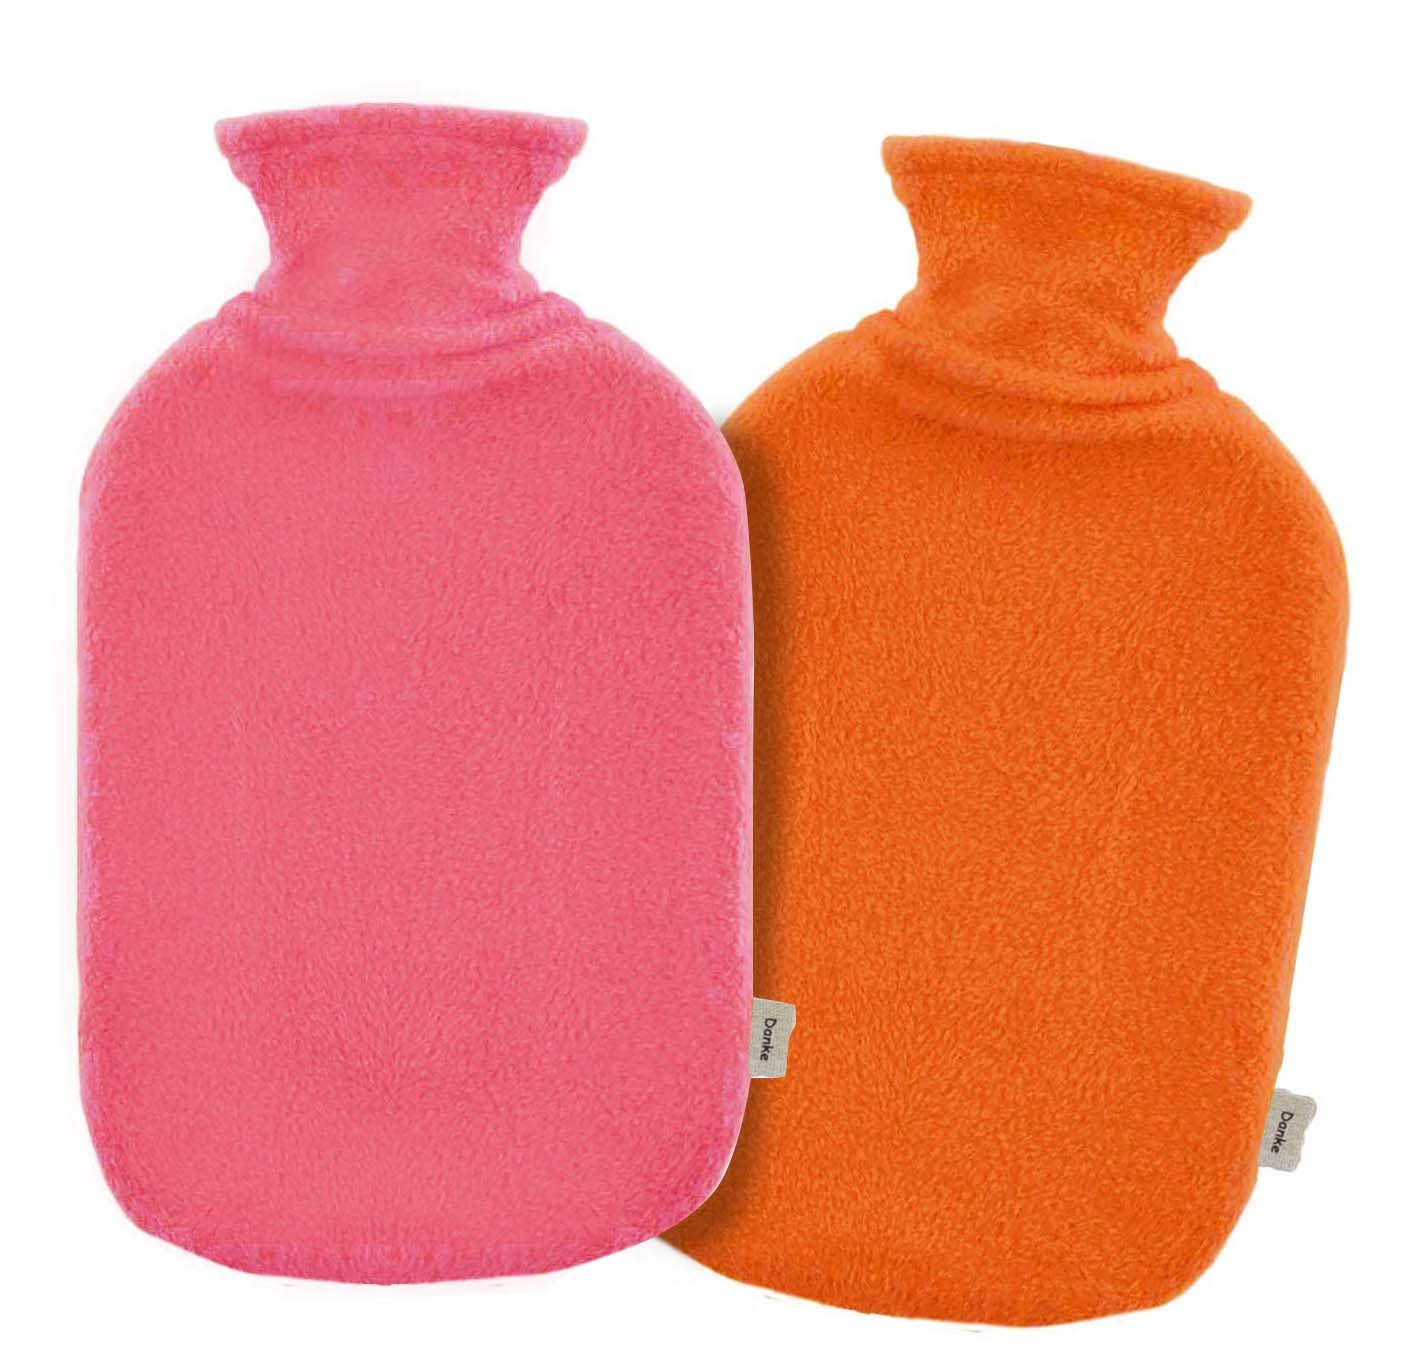 fashy hottie bottle 2.0L u0026 Danke fleece cover with two ( Pink 1 orange ) DK6530PK1 + ORC